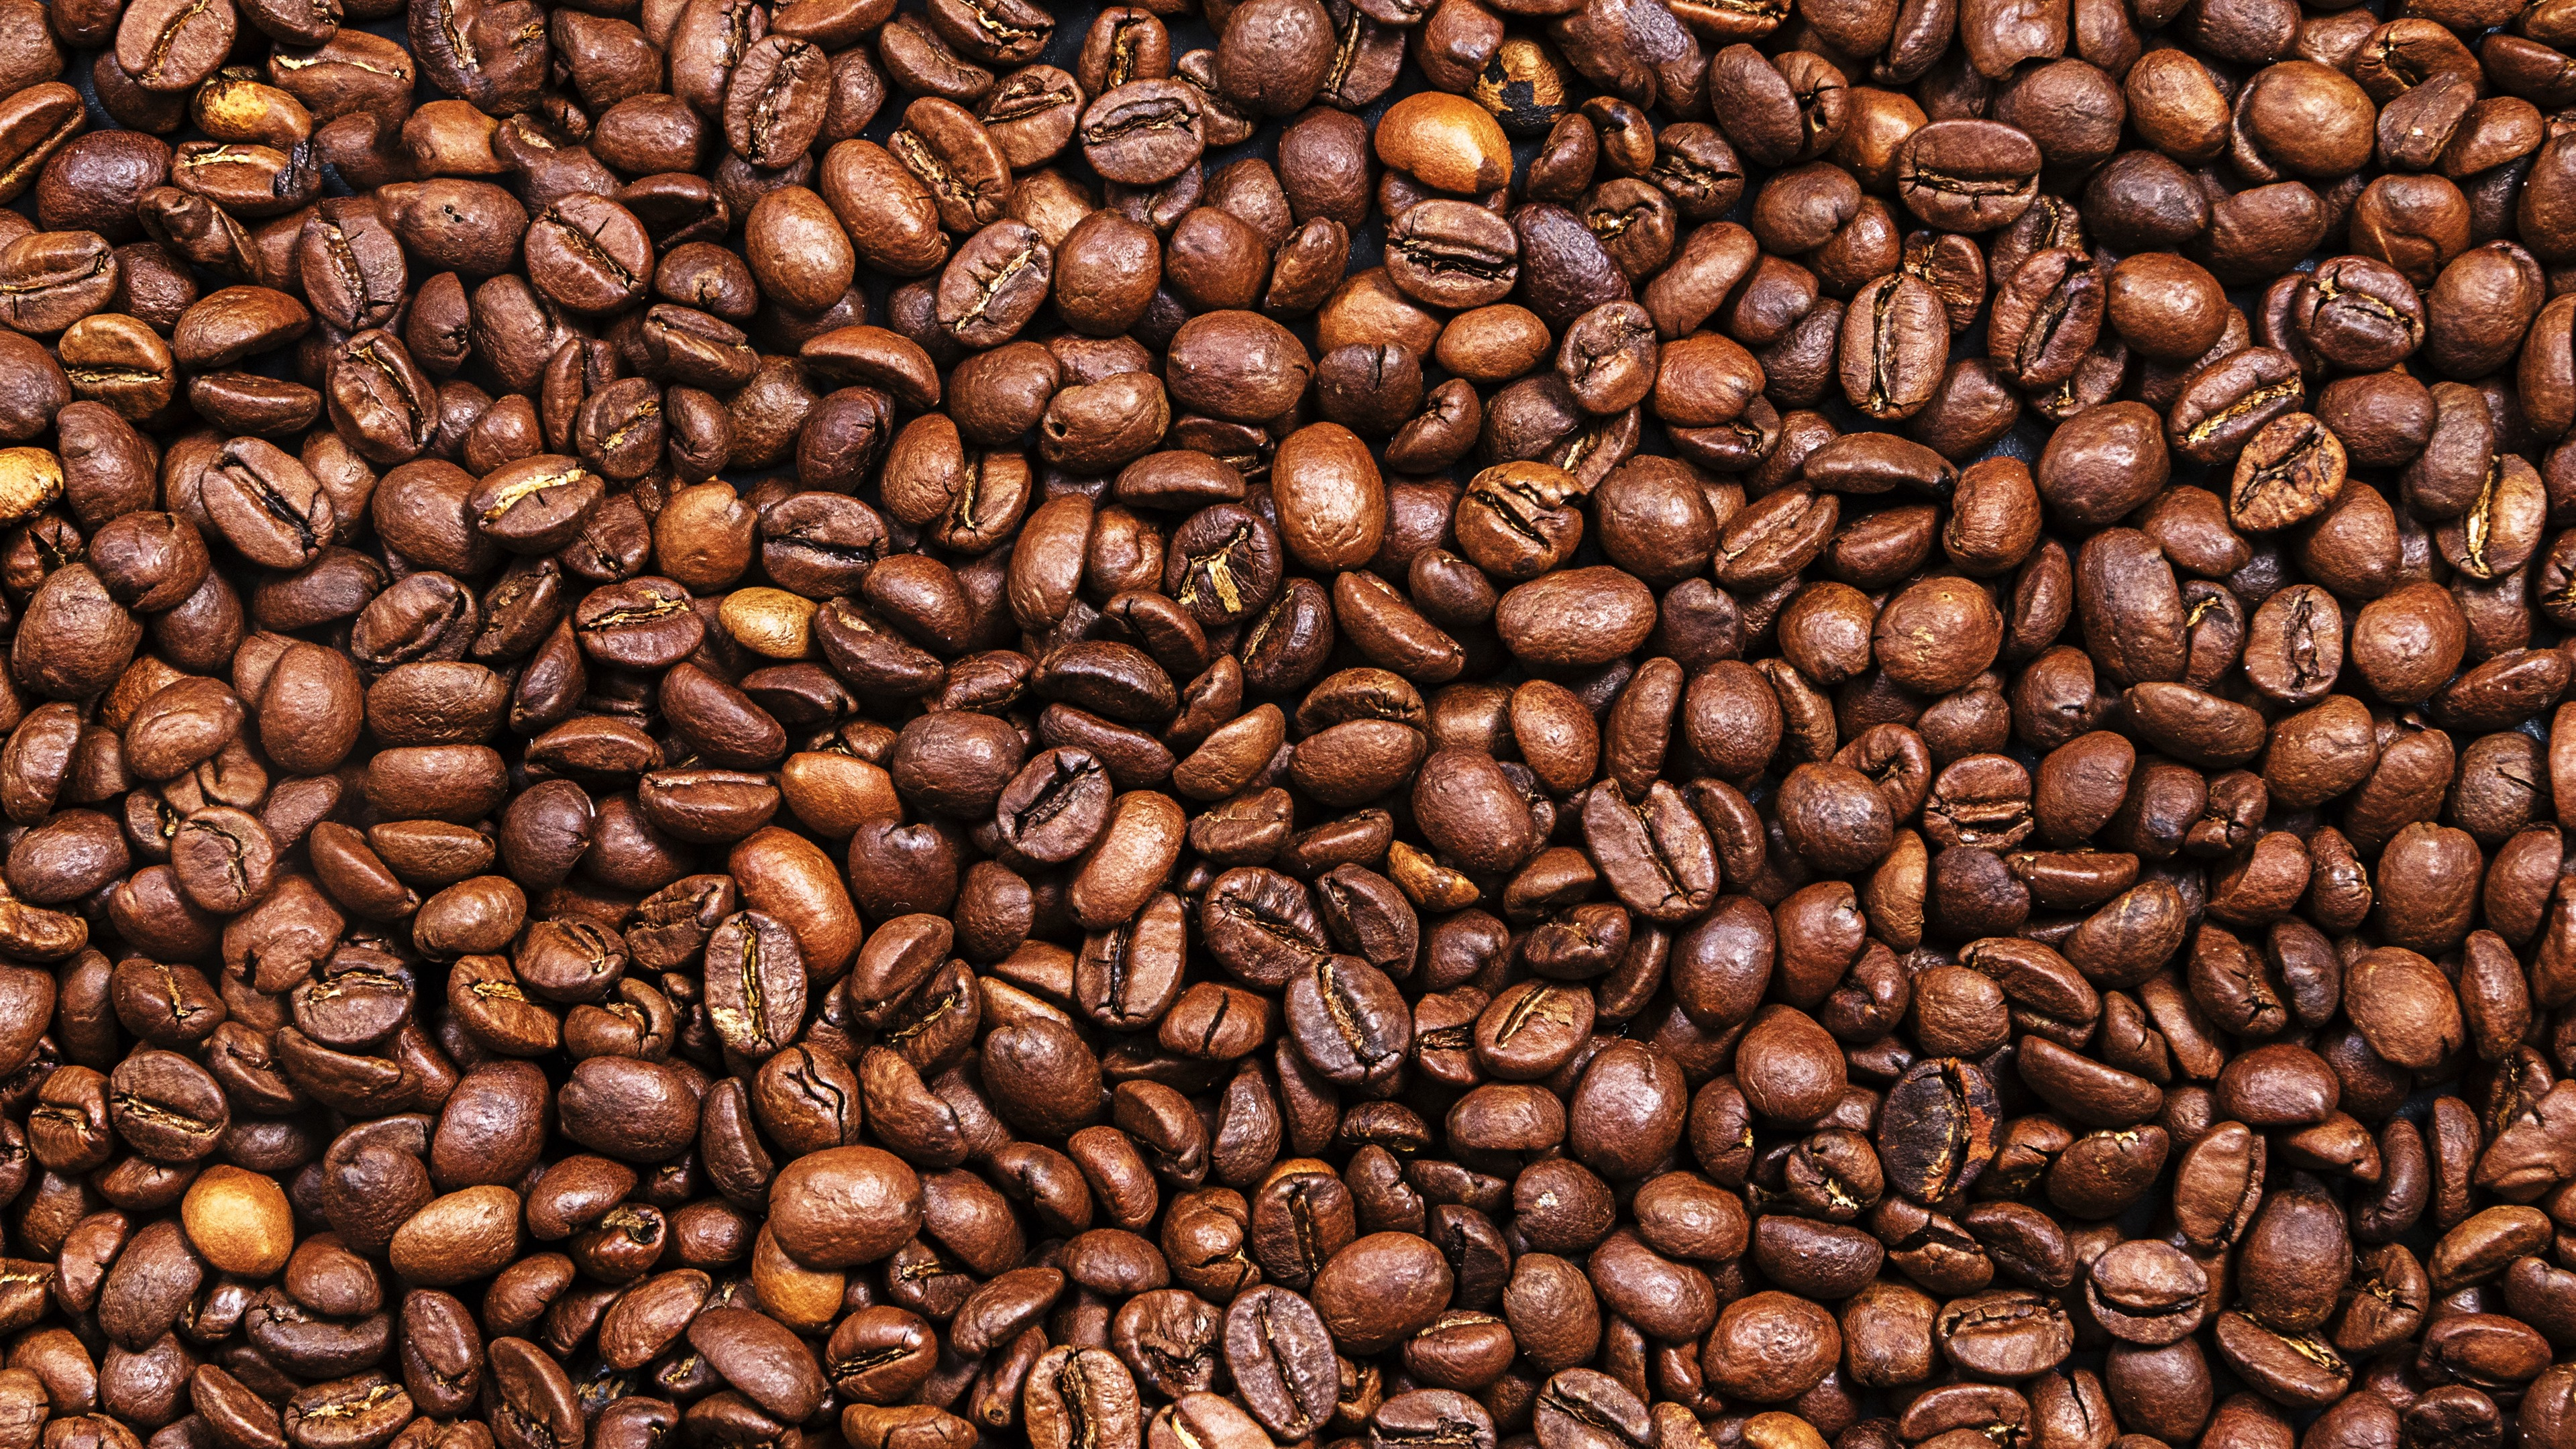 Wallpaper Many coffee beans, texture background 5120x2880 ...